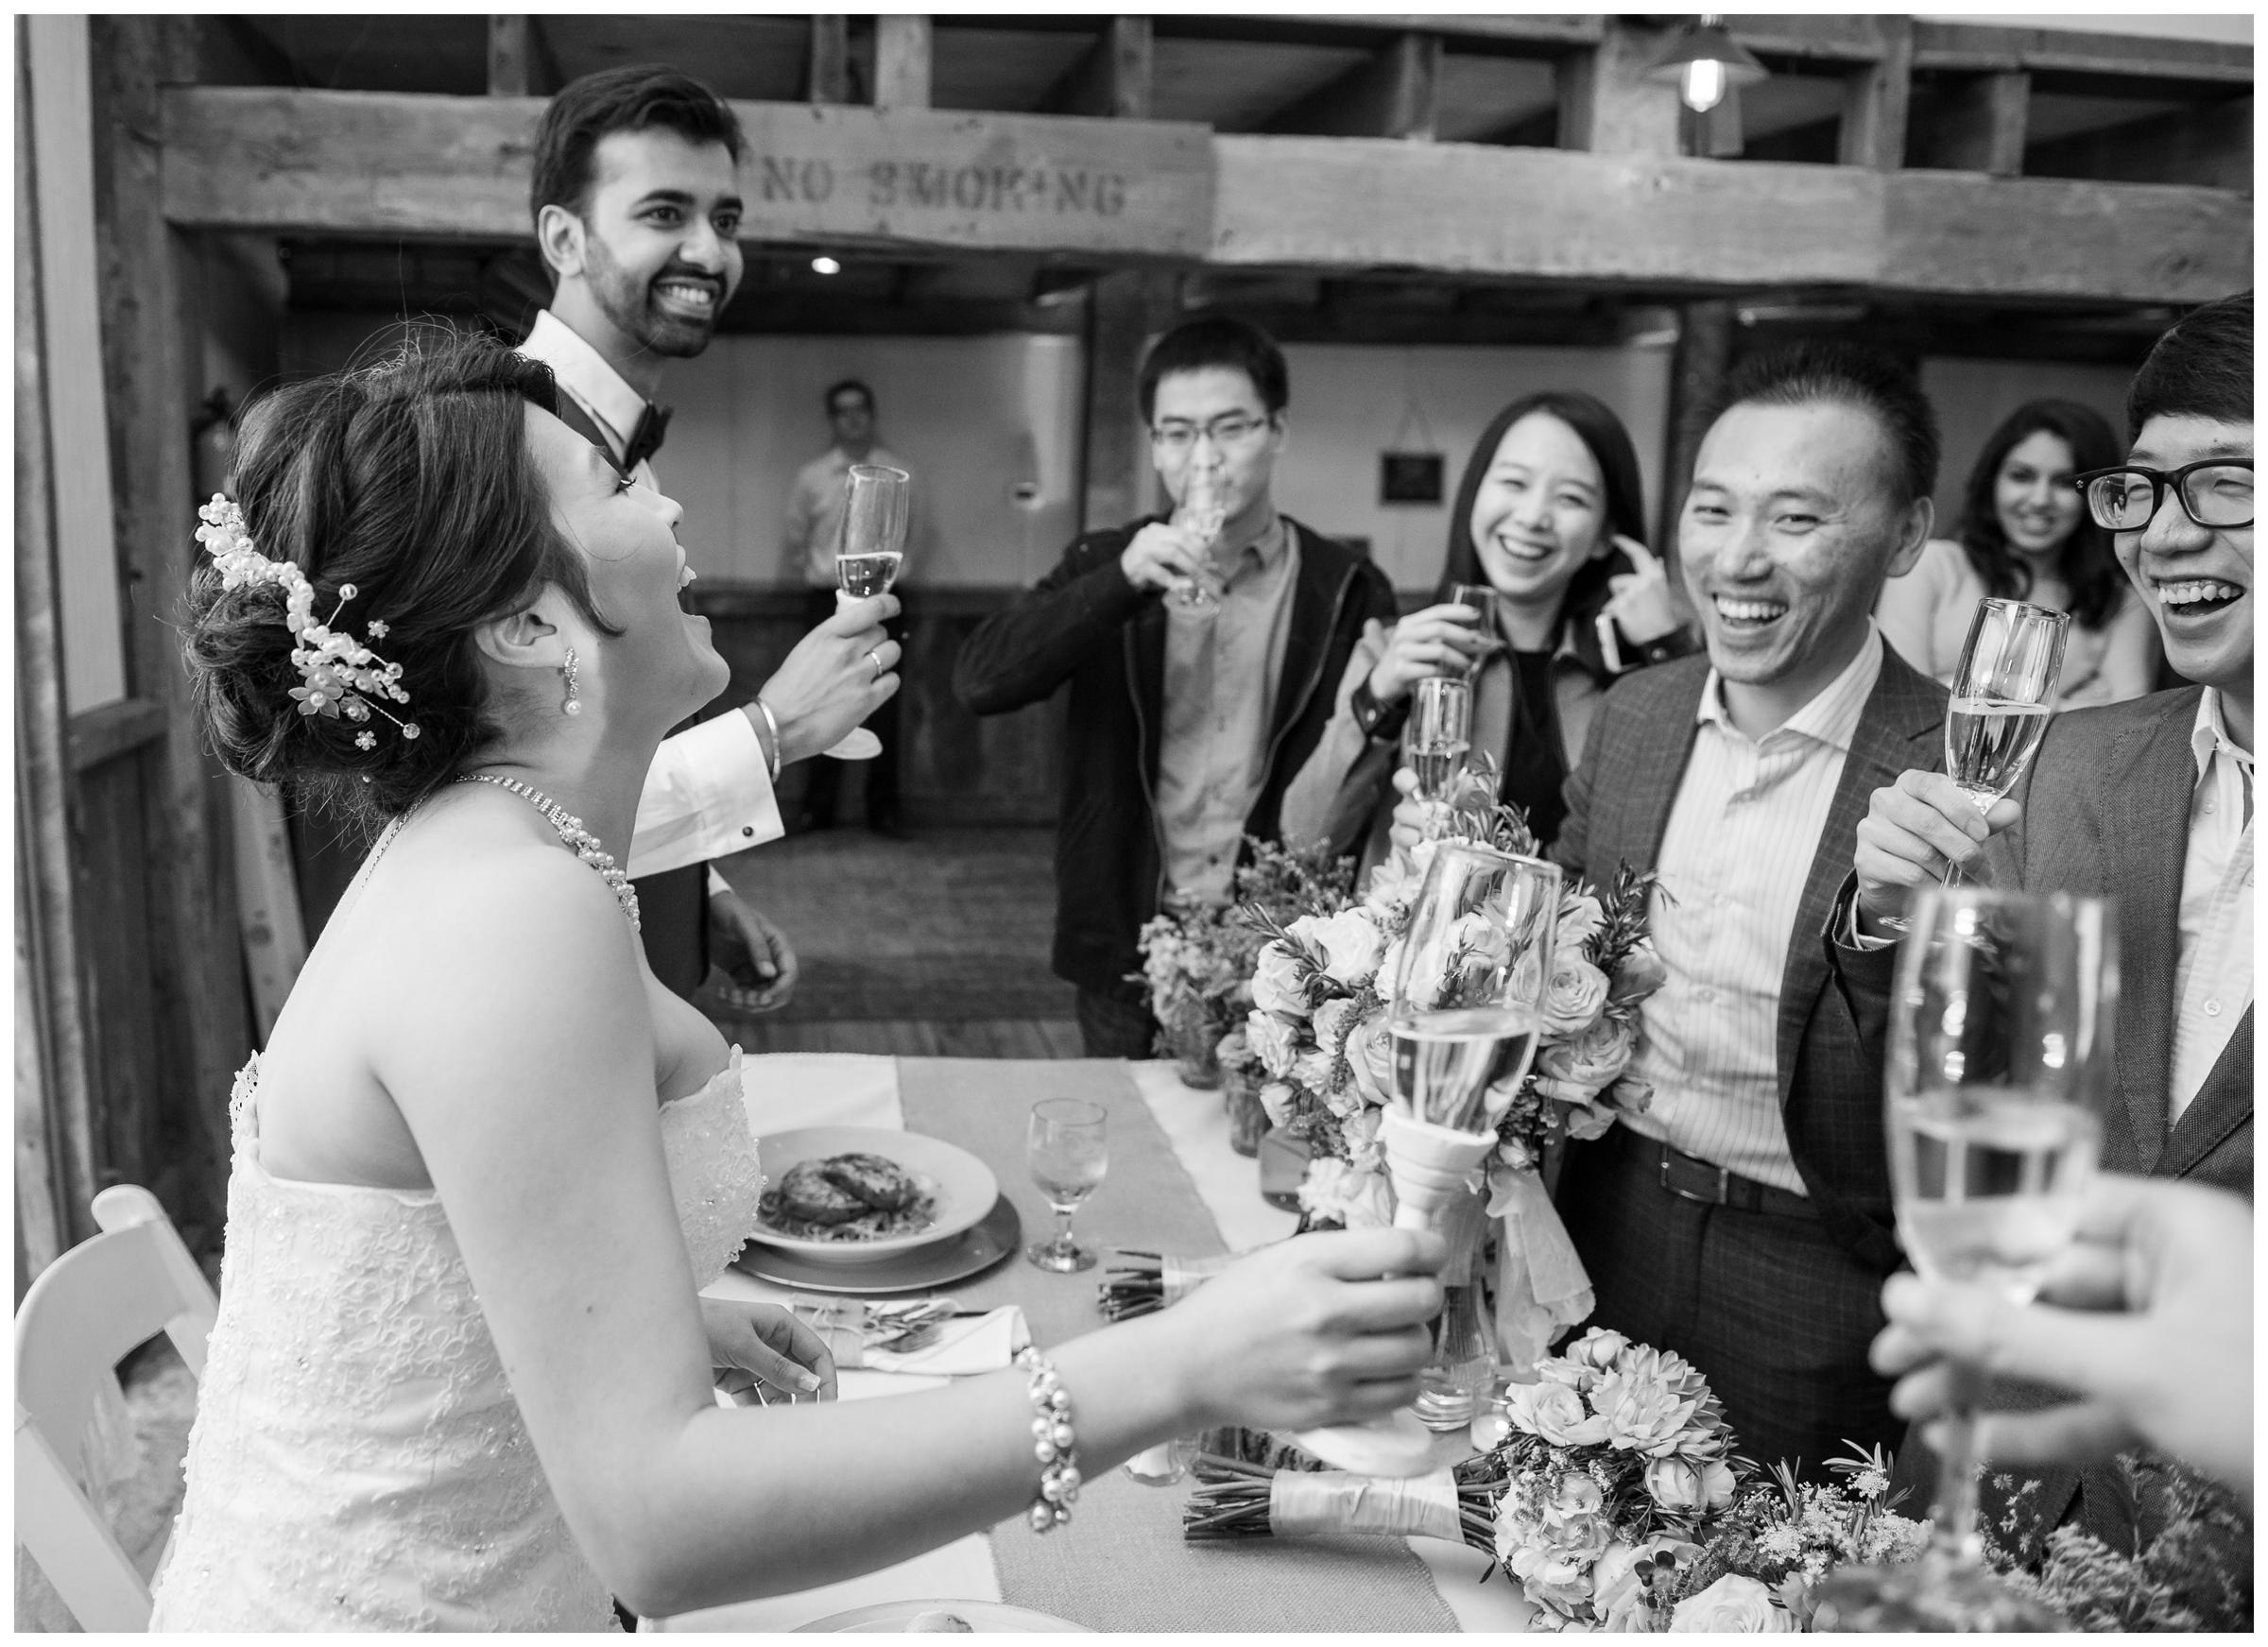 guests toast with the bride and groom during wedding reception